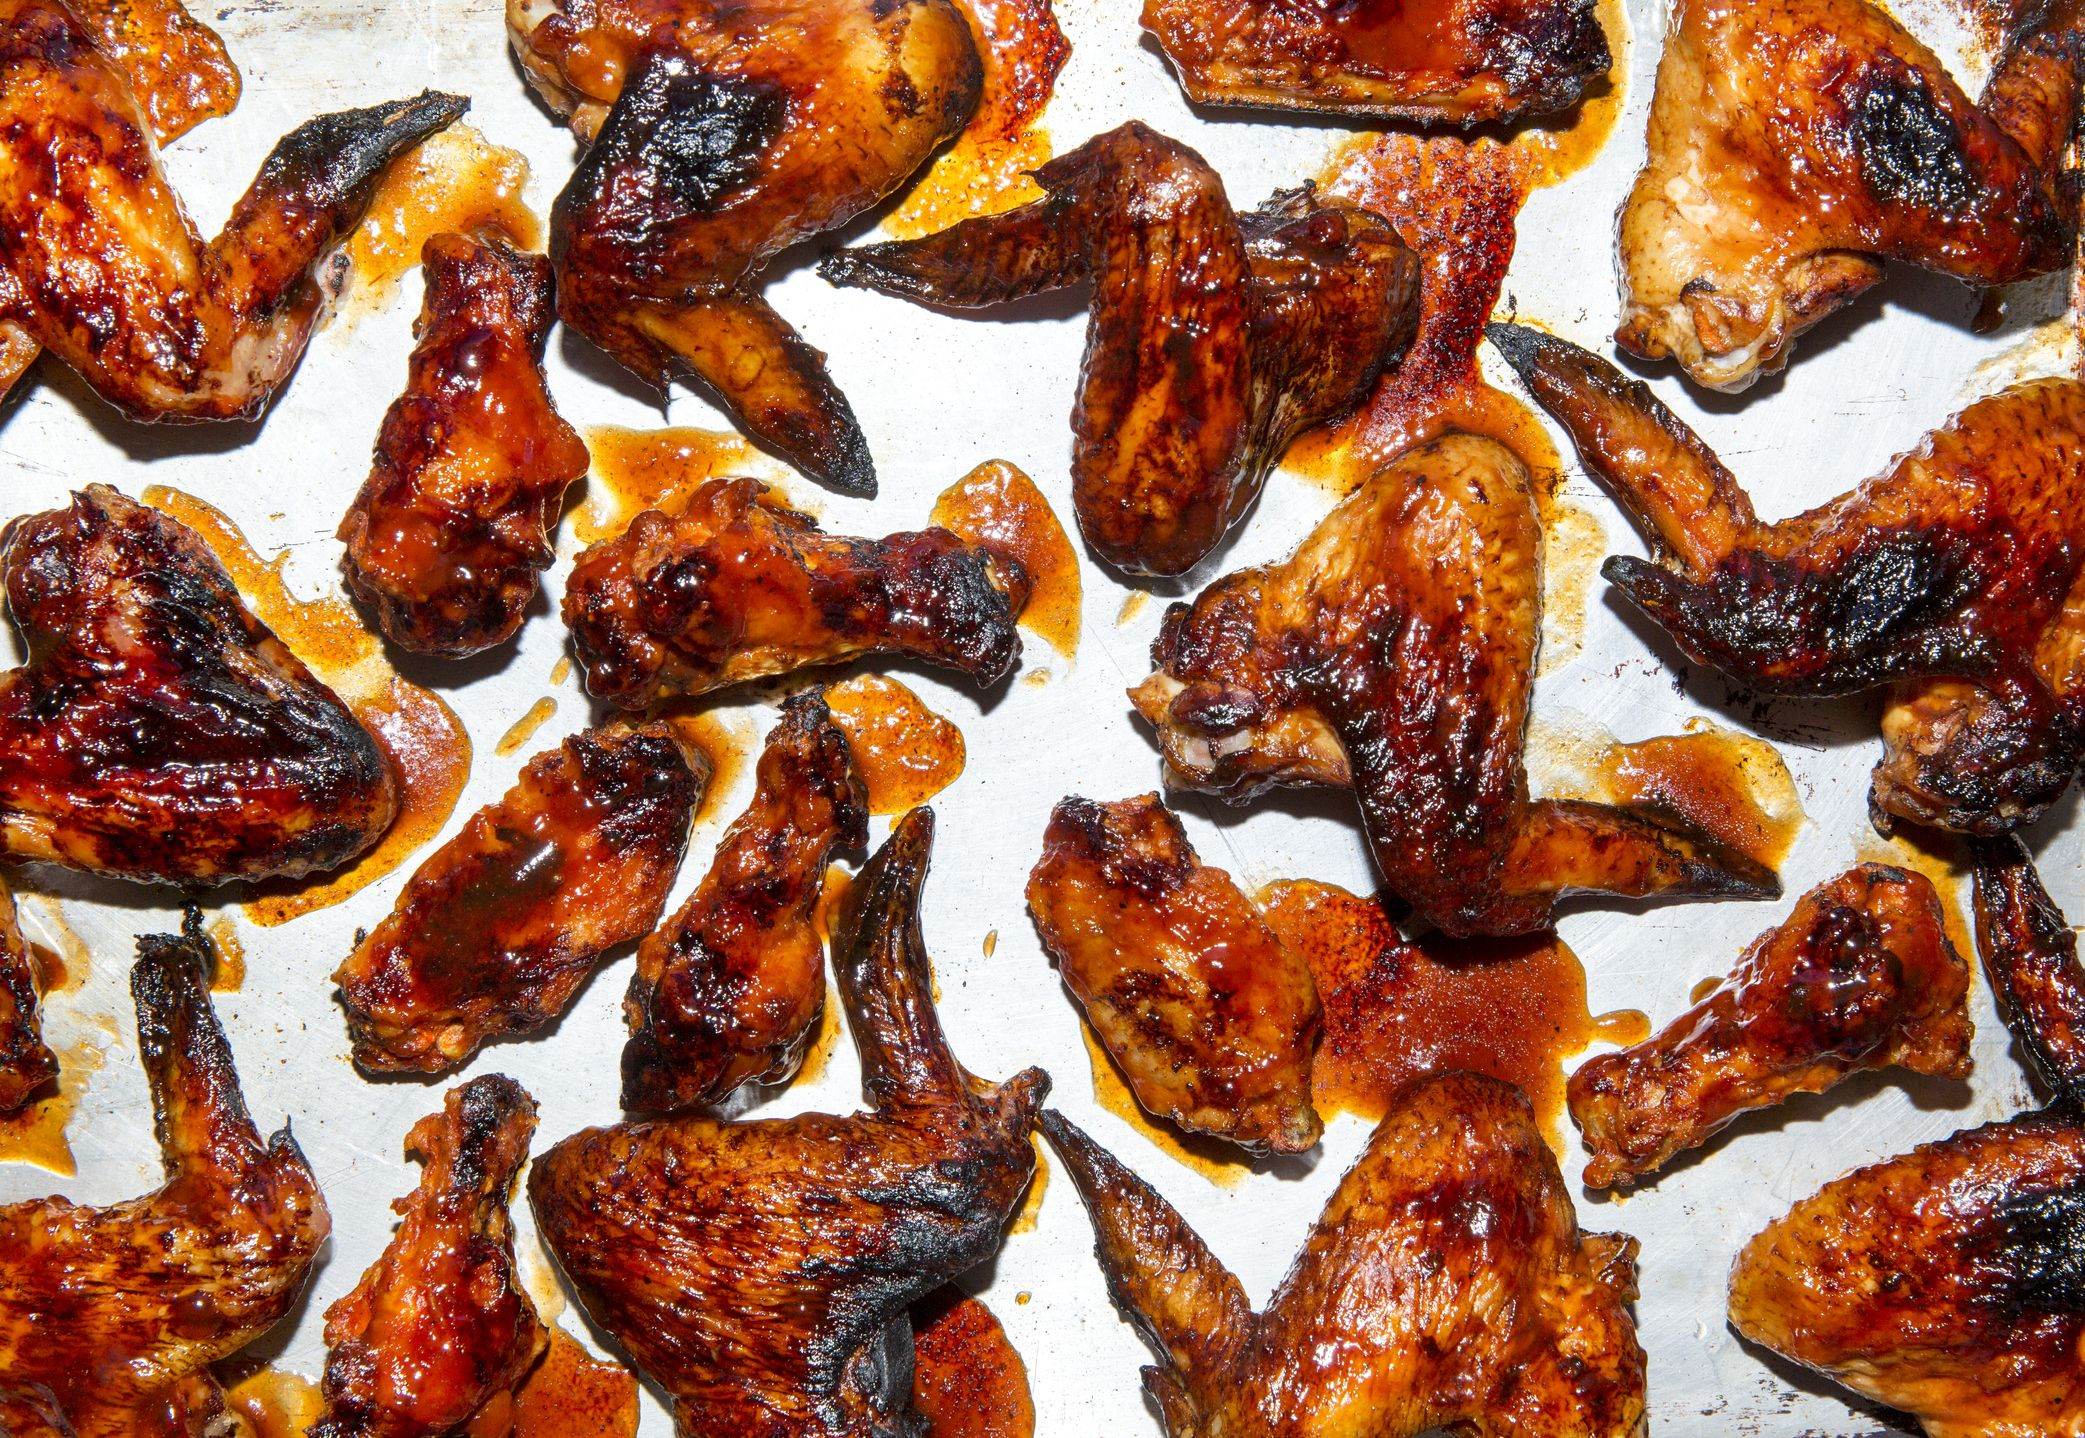 The 10 Best Chicken Wing Recipes You've Never Tasted